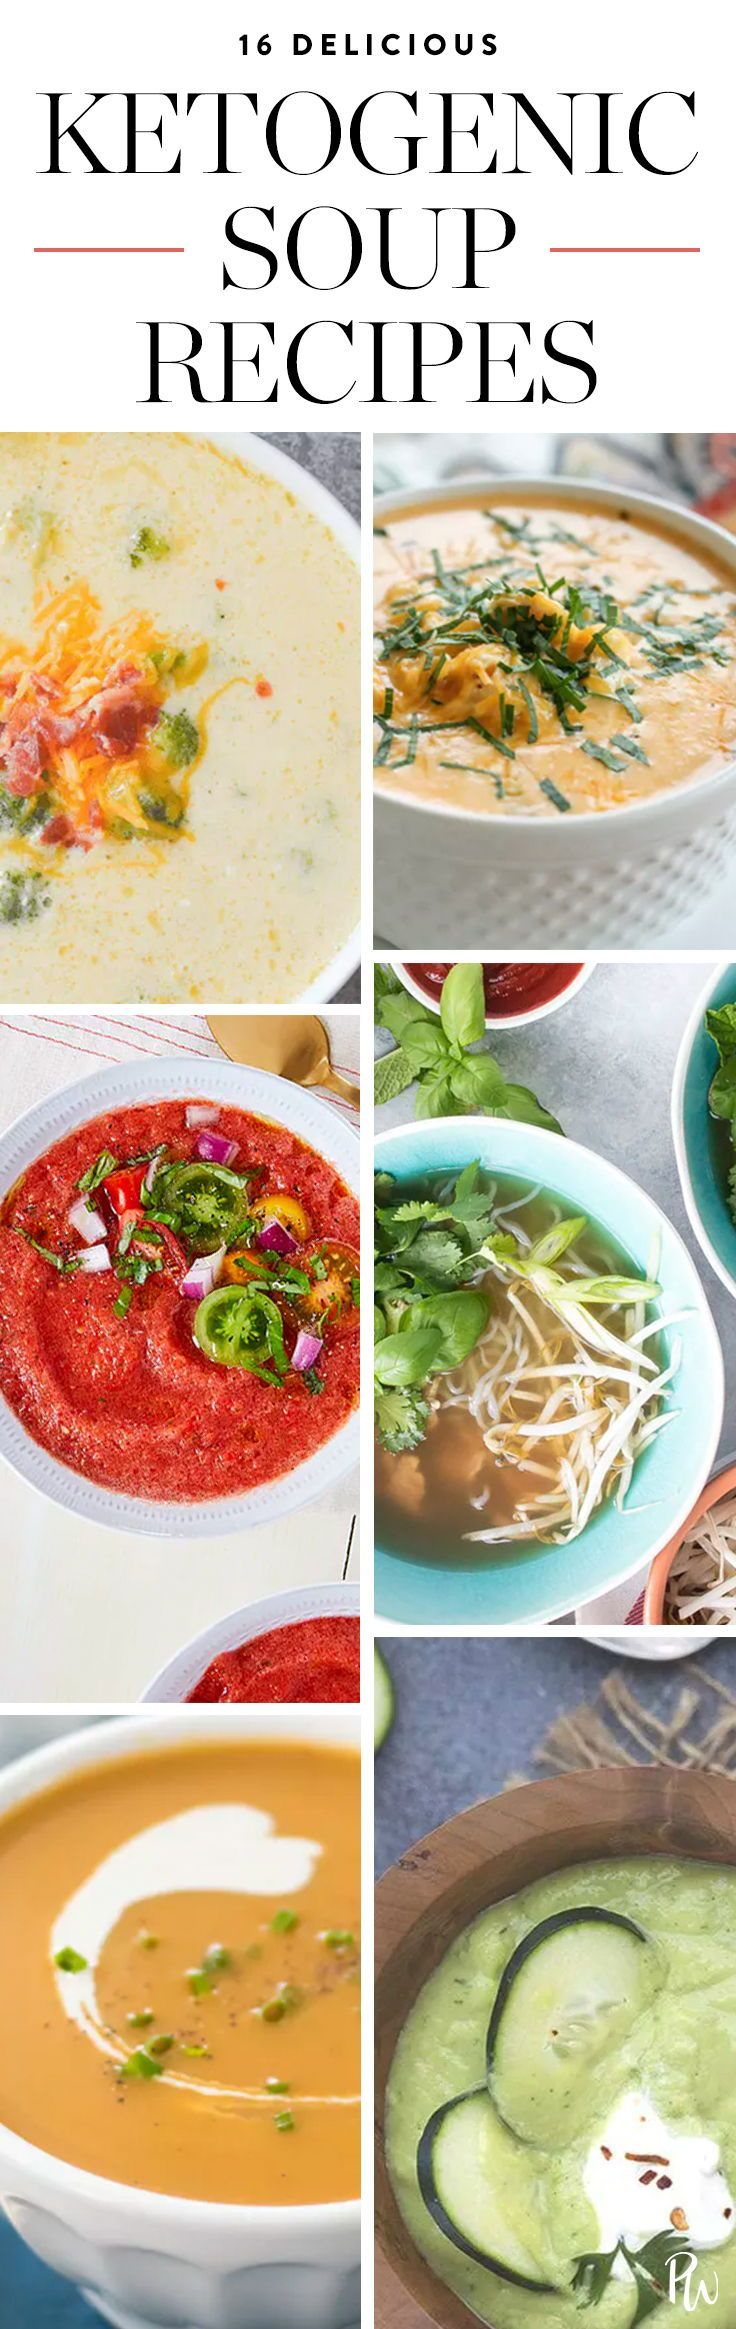 16 Keto-Friendly Soups and Stews to Fill You Up #ketogenicdiet #ketomeals #ketosoups #ketogenicsoups #souprecipes